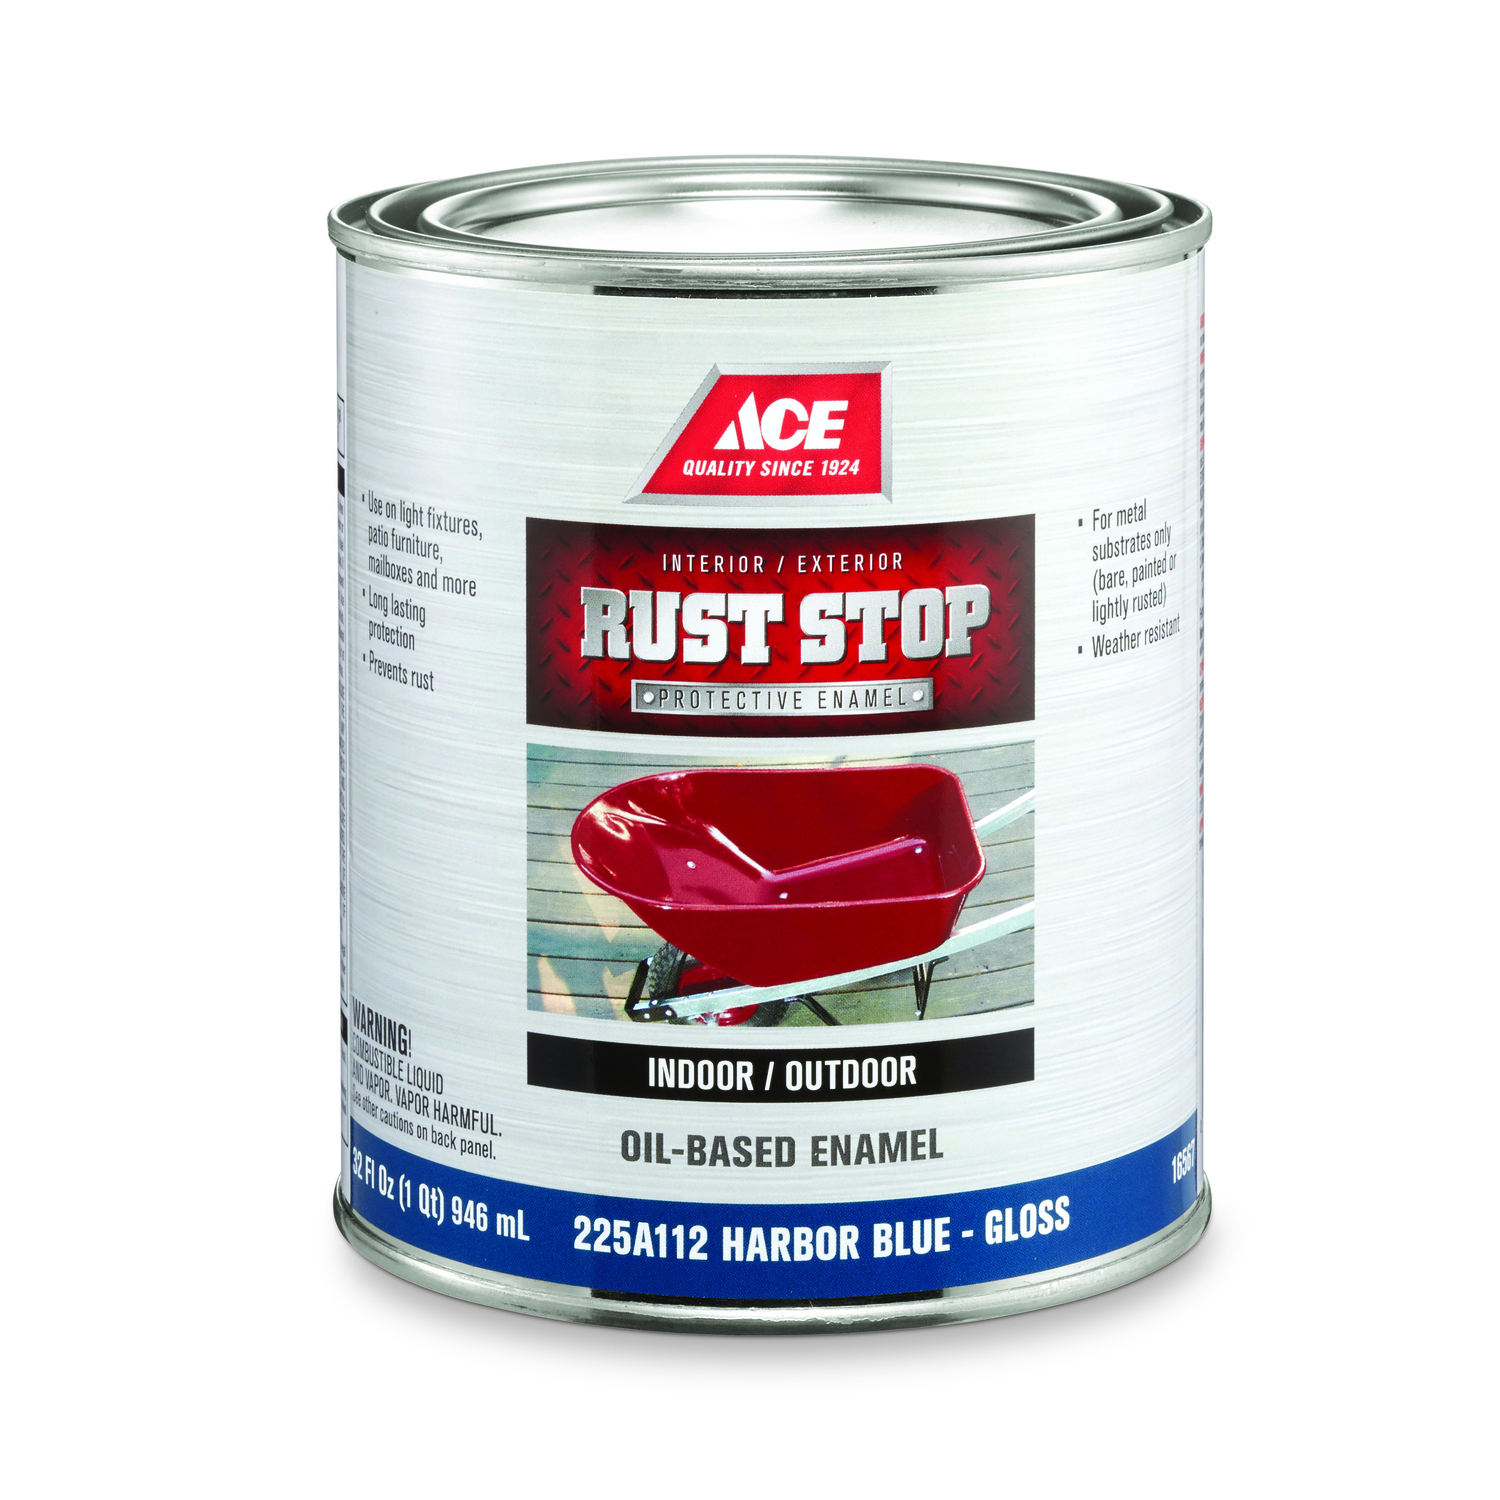 Ace  Rust Stop  Indoor and Outdoor  Interior/Exterior  Harbor Blue  1 qt. Rust Prevention Paint  Glo